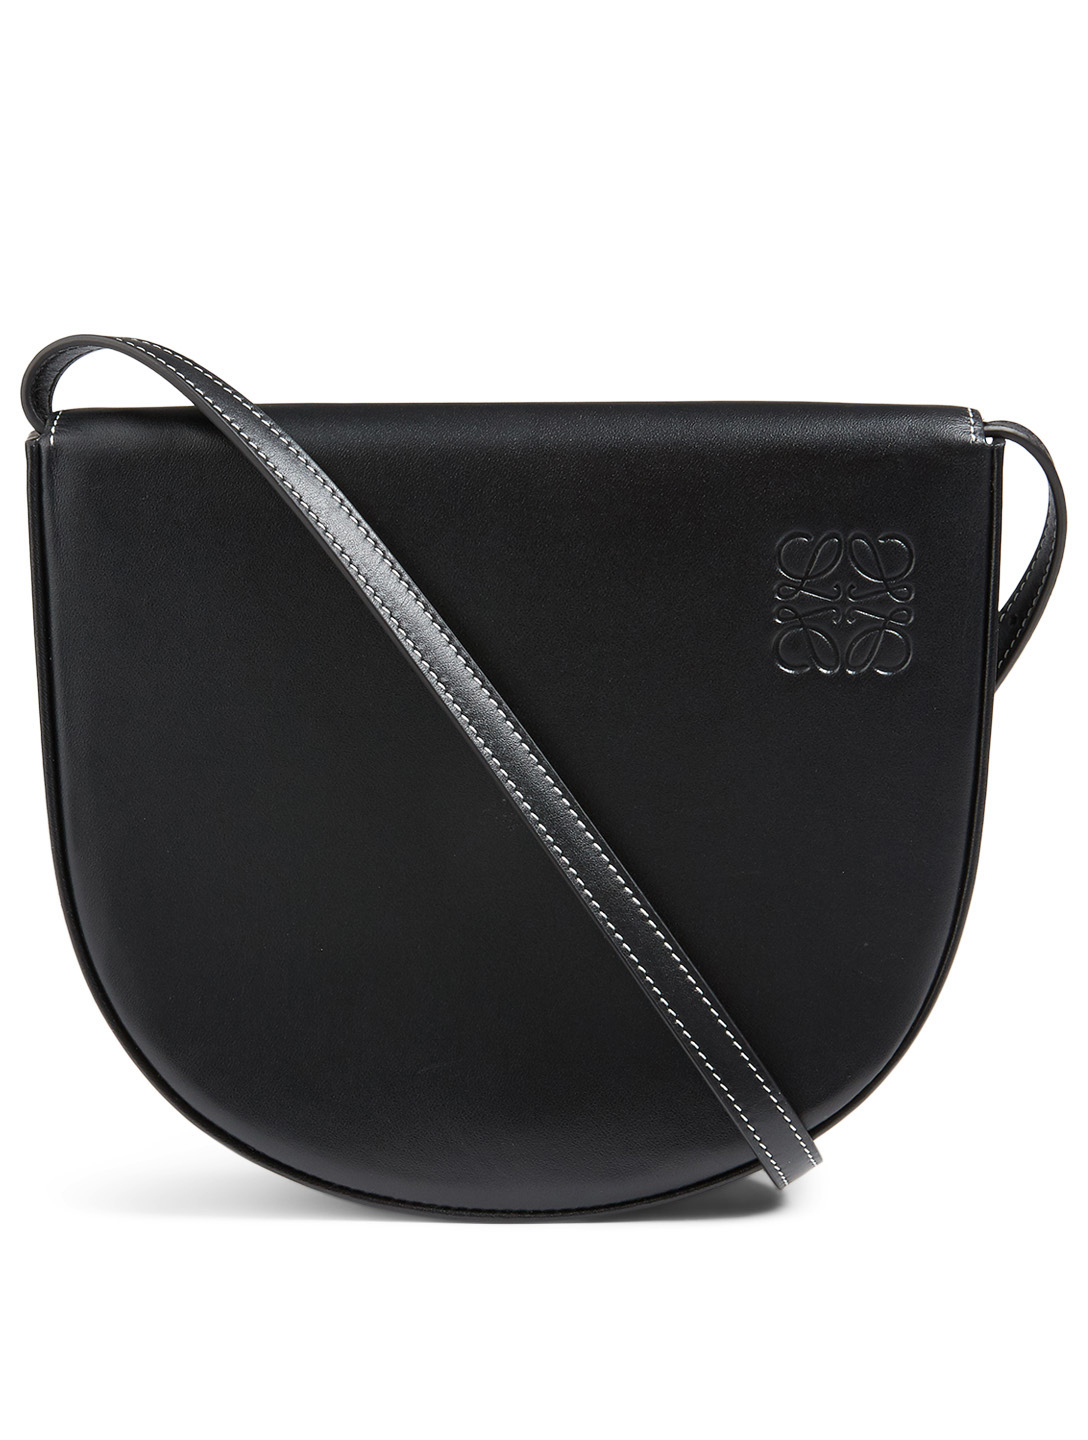 LOEWE Mini Heel Leather Bag Women's Black